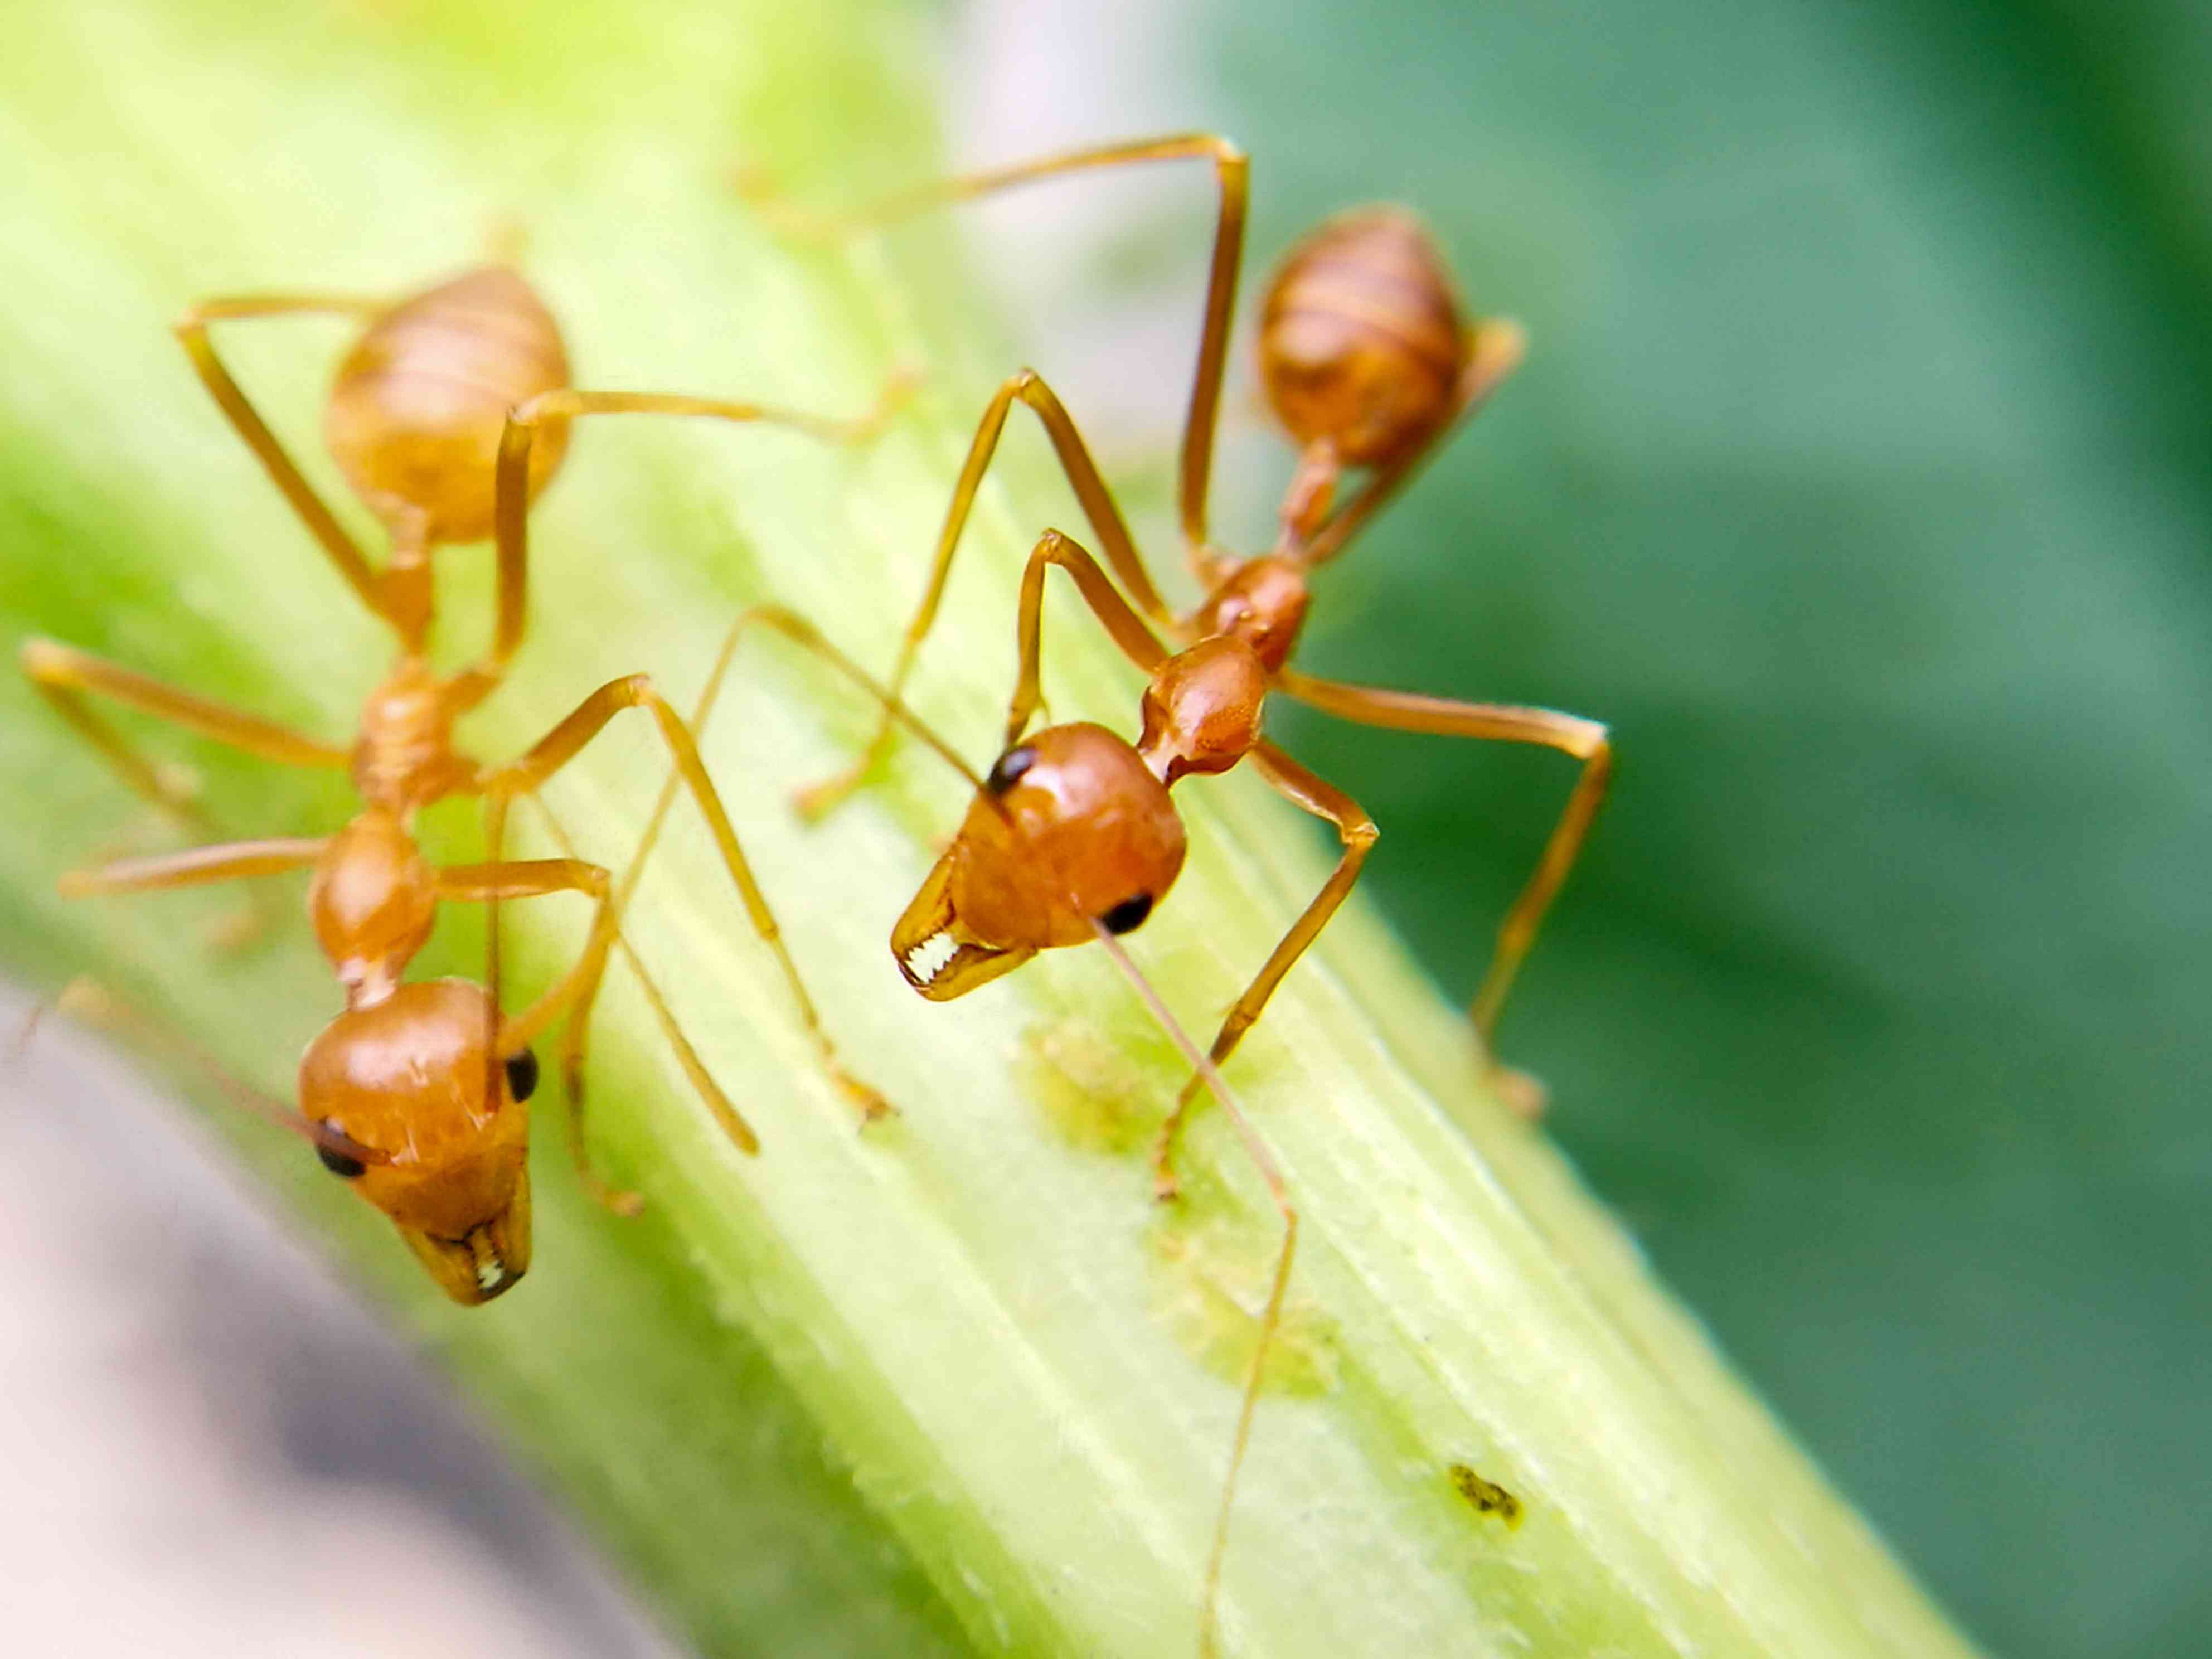 Two fire ants on a plant